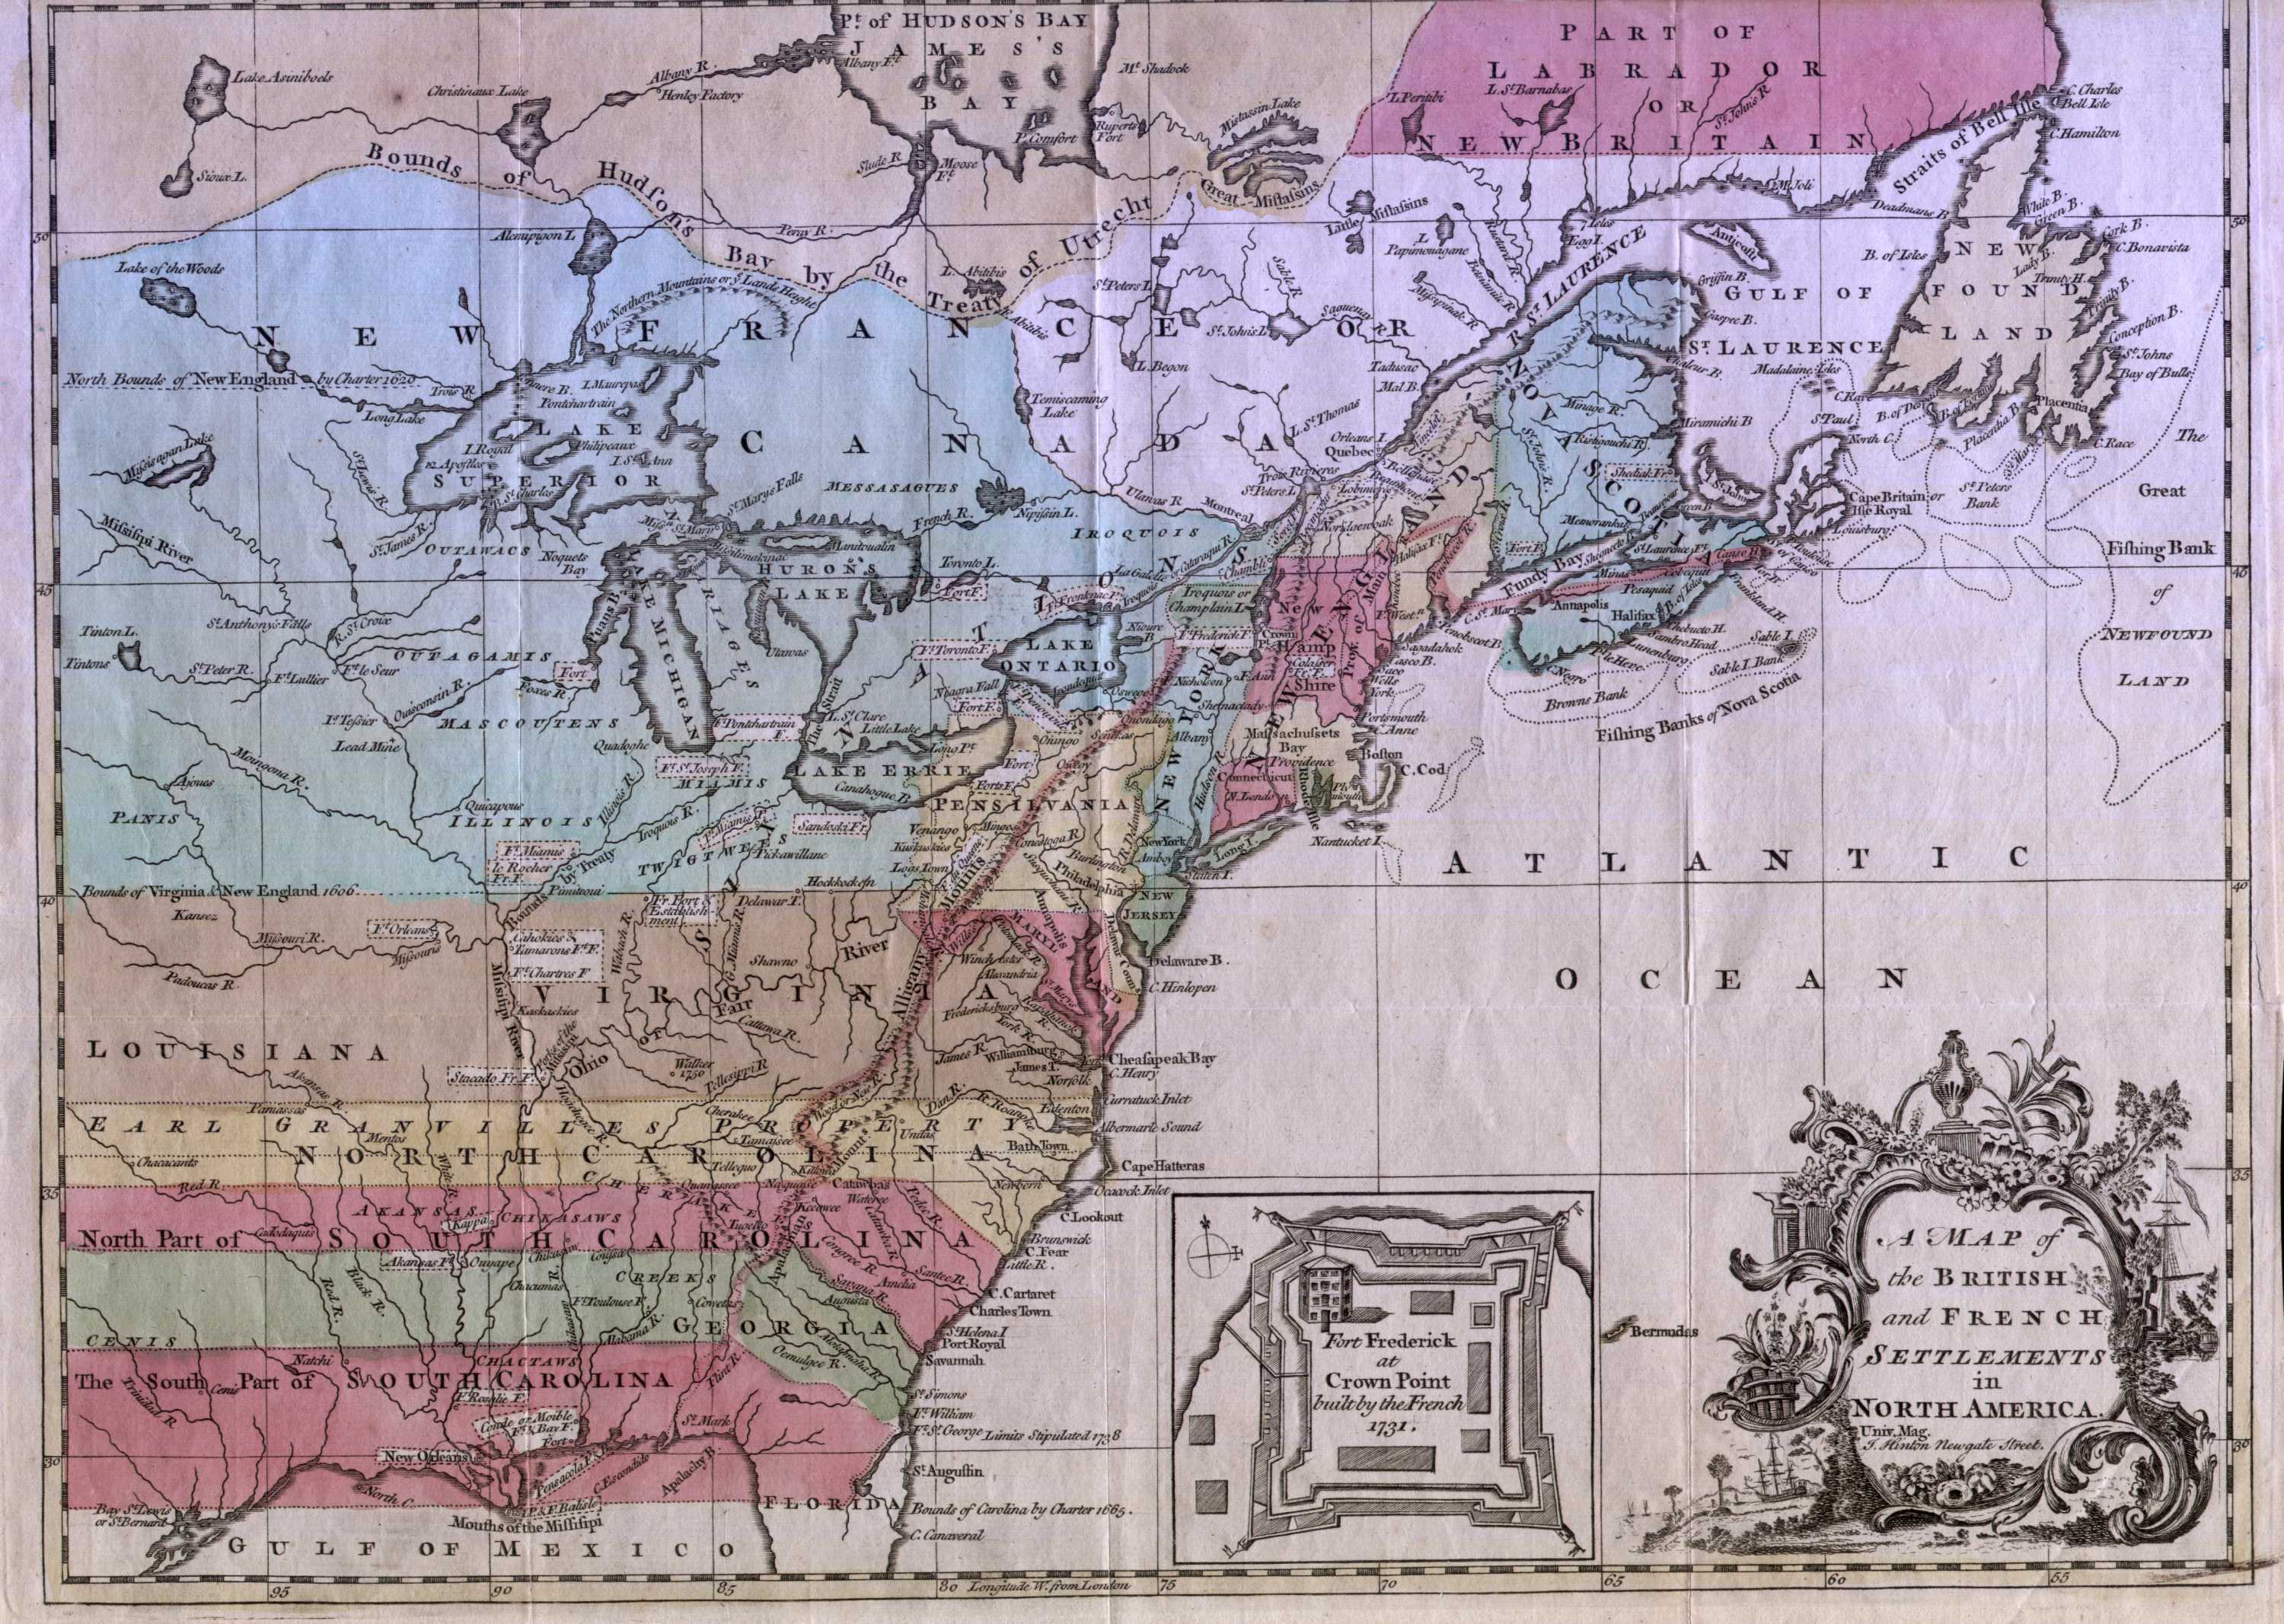 to pennsylvania maps another map similar to the one above illustrating the french n war to